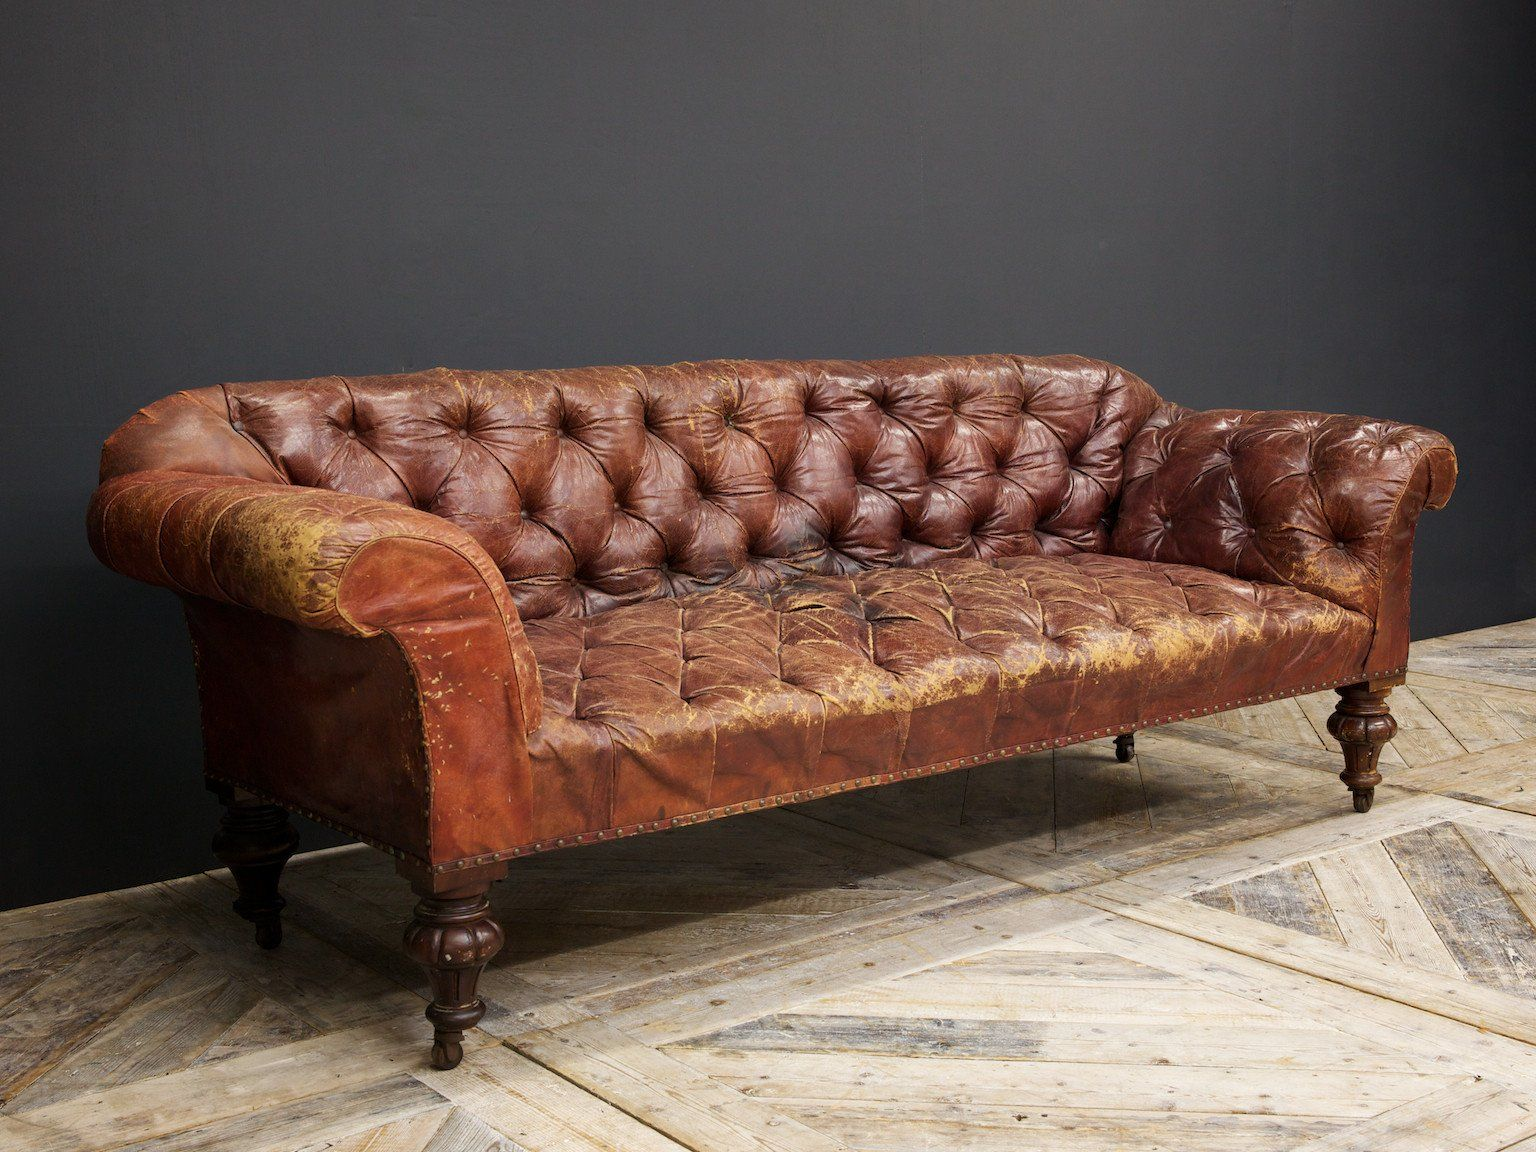 Raised On Turned And Carved Mahogany Legs. Chesterfield Sofas, Leather ...